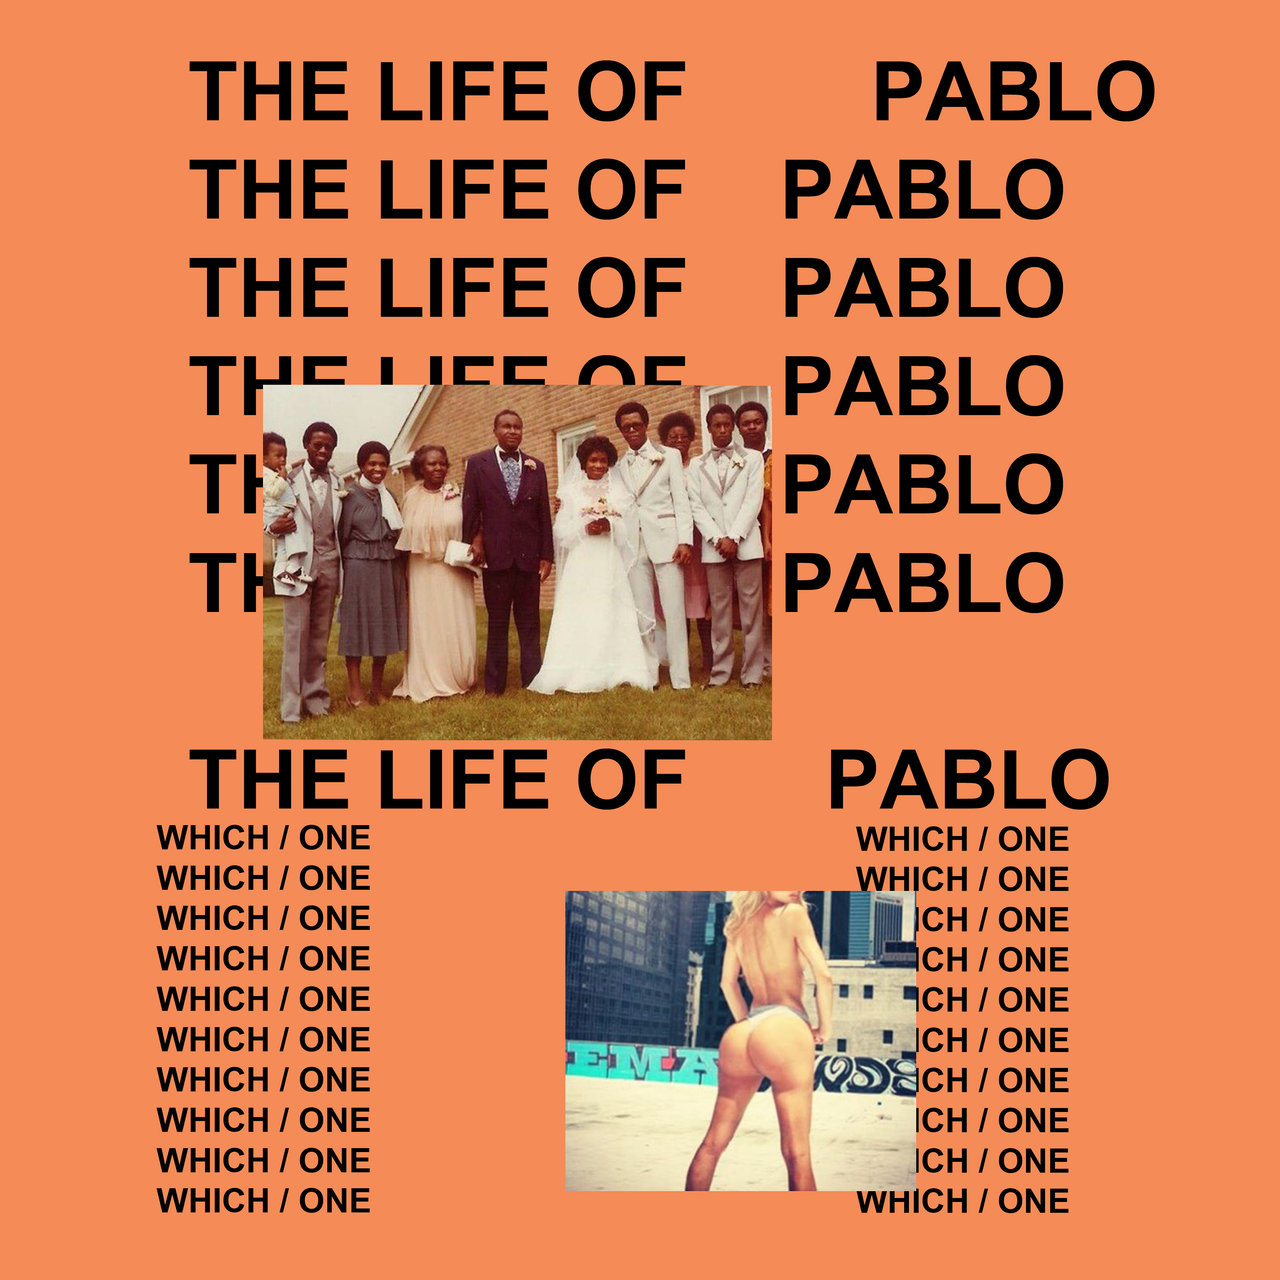 LIFE OF PABLO FONT